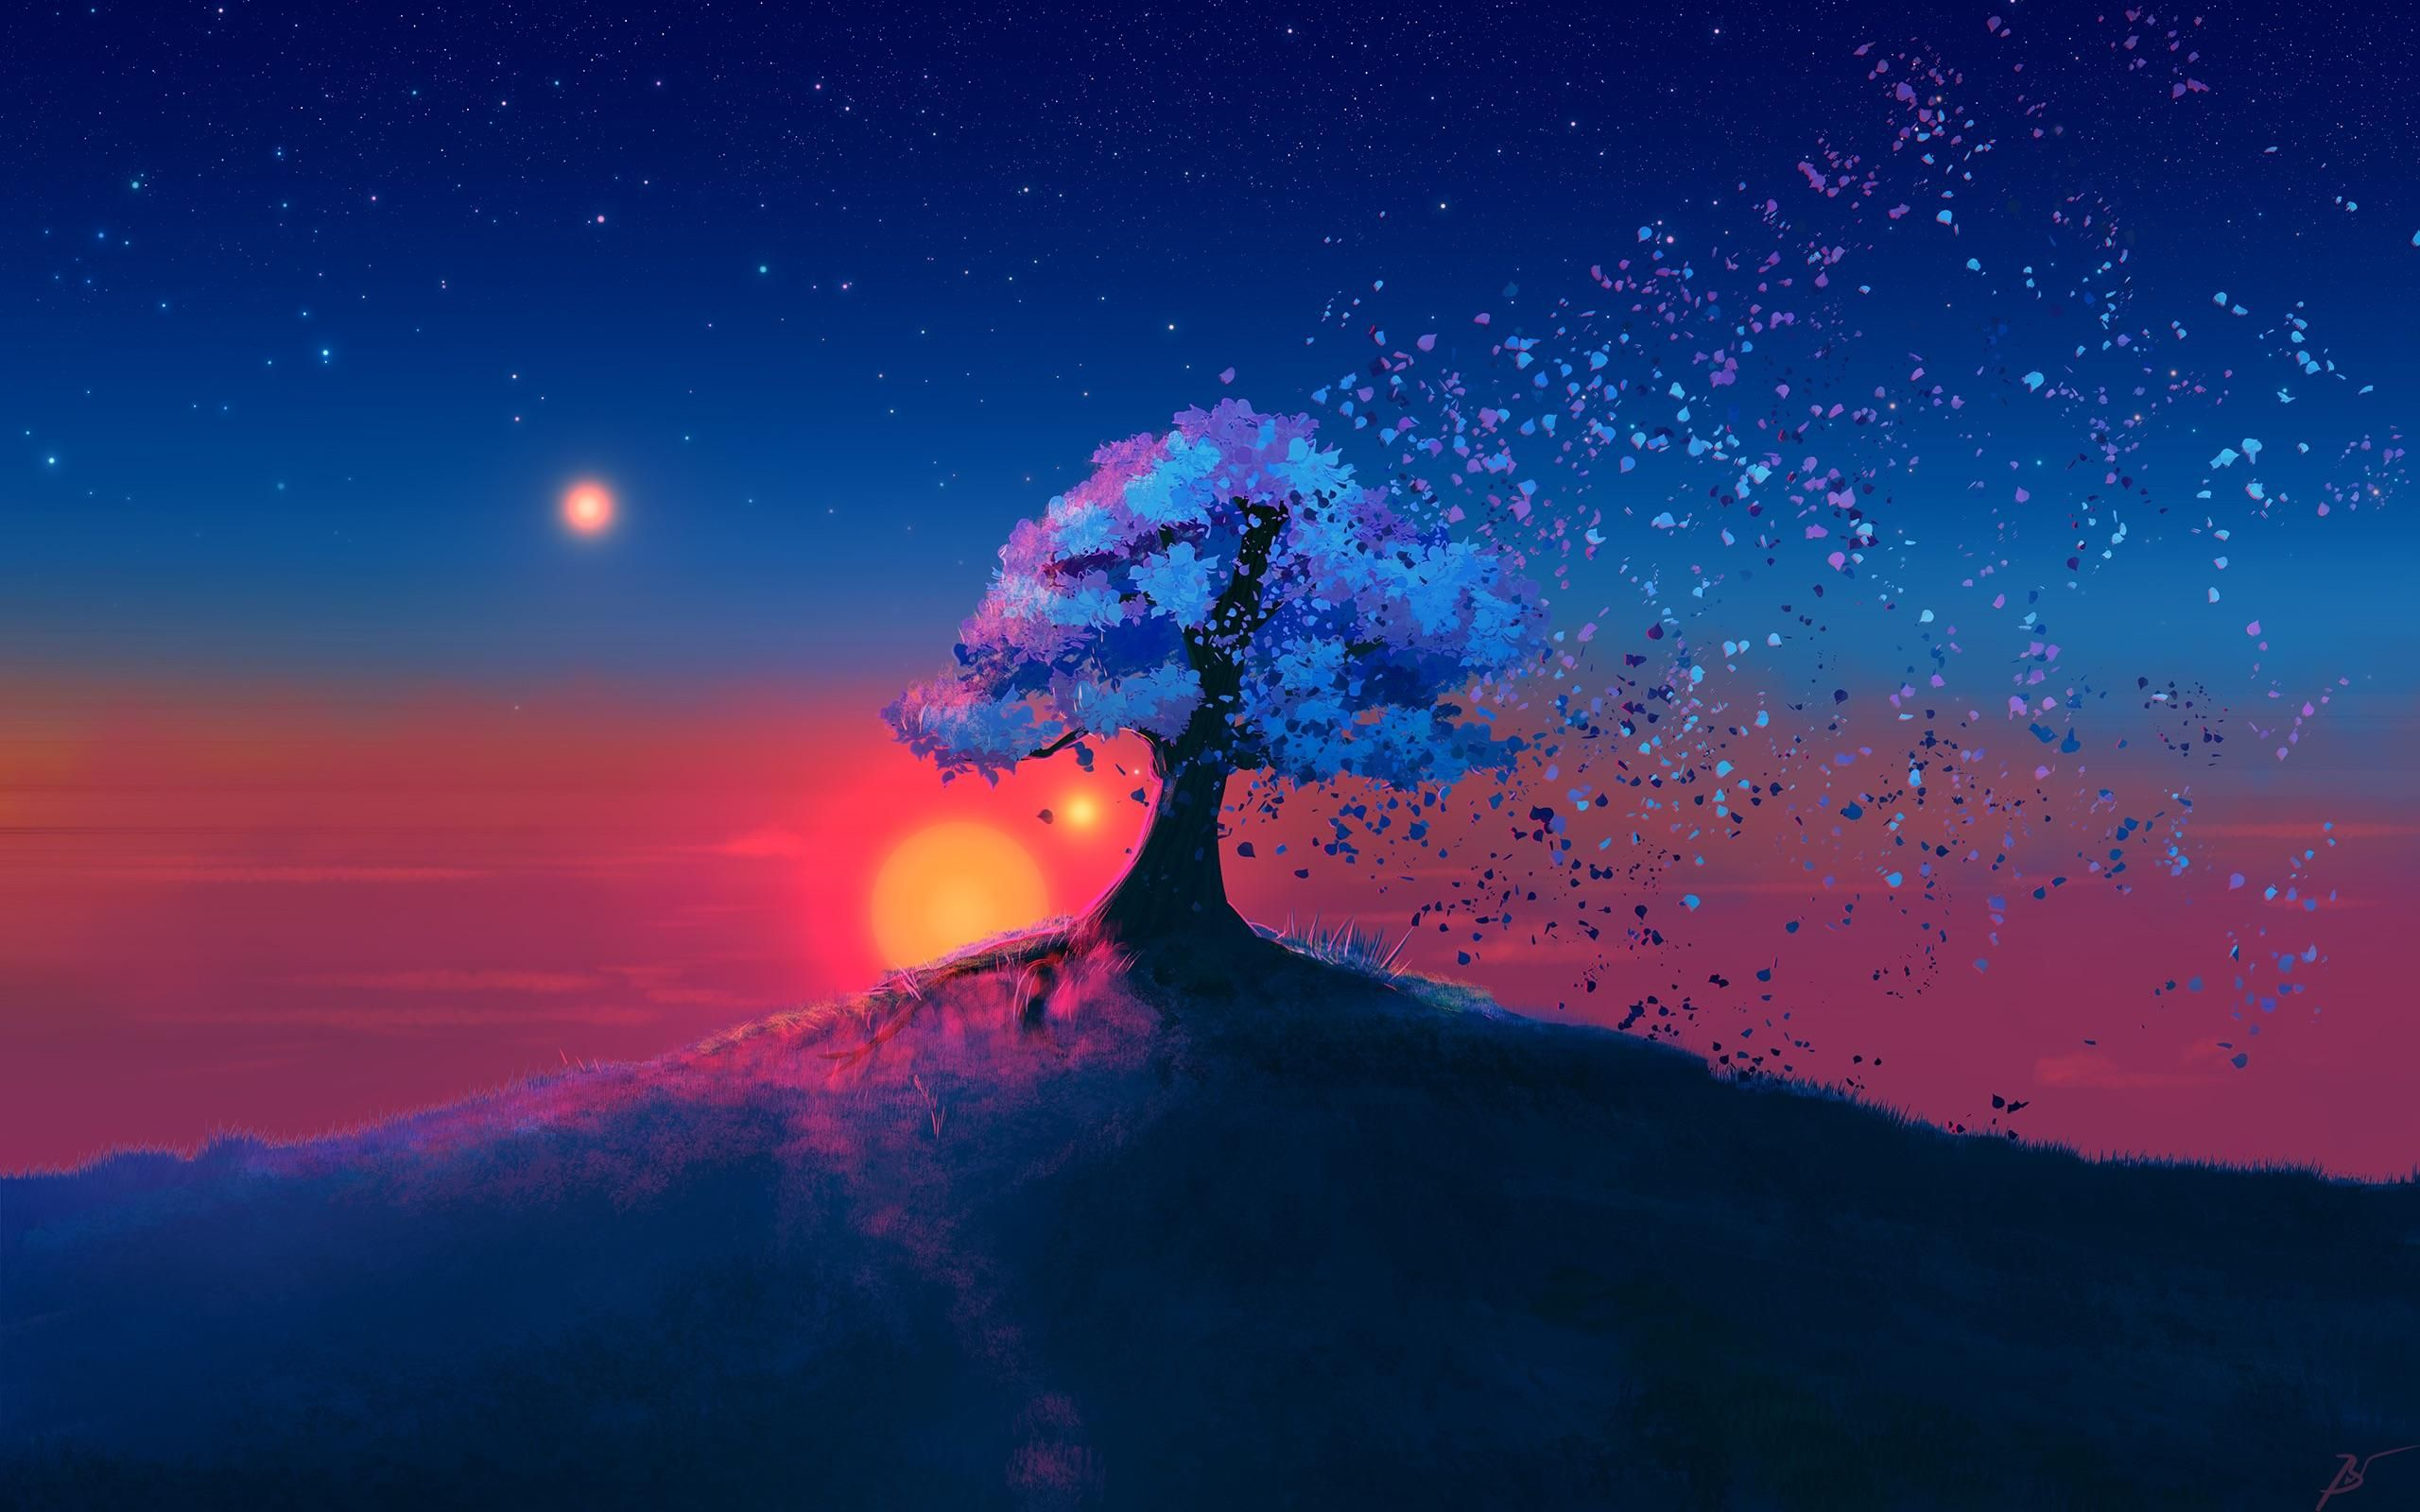 Fading Tree Music Indieartist Chicago Tree Sunset Wallpaper Sunset Wallpaper Scenery Wallpaper